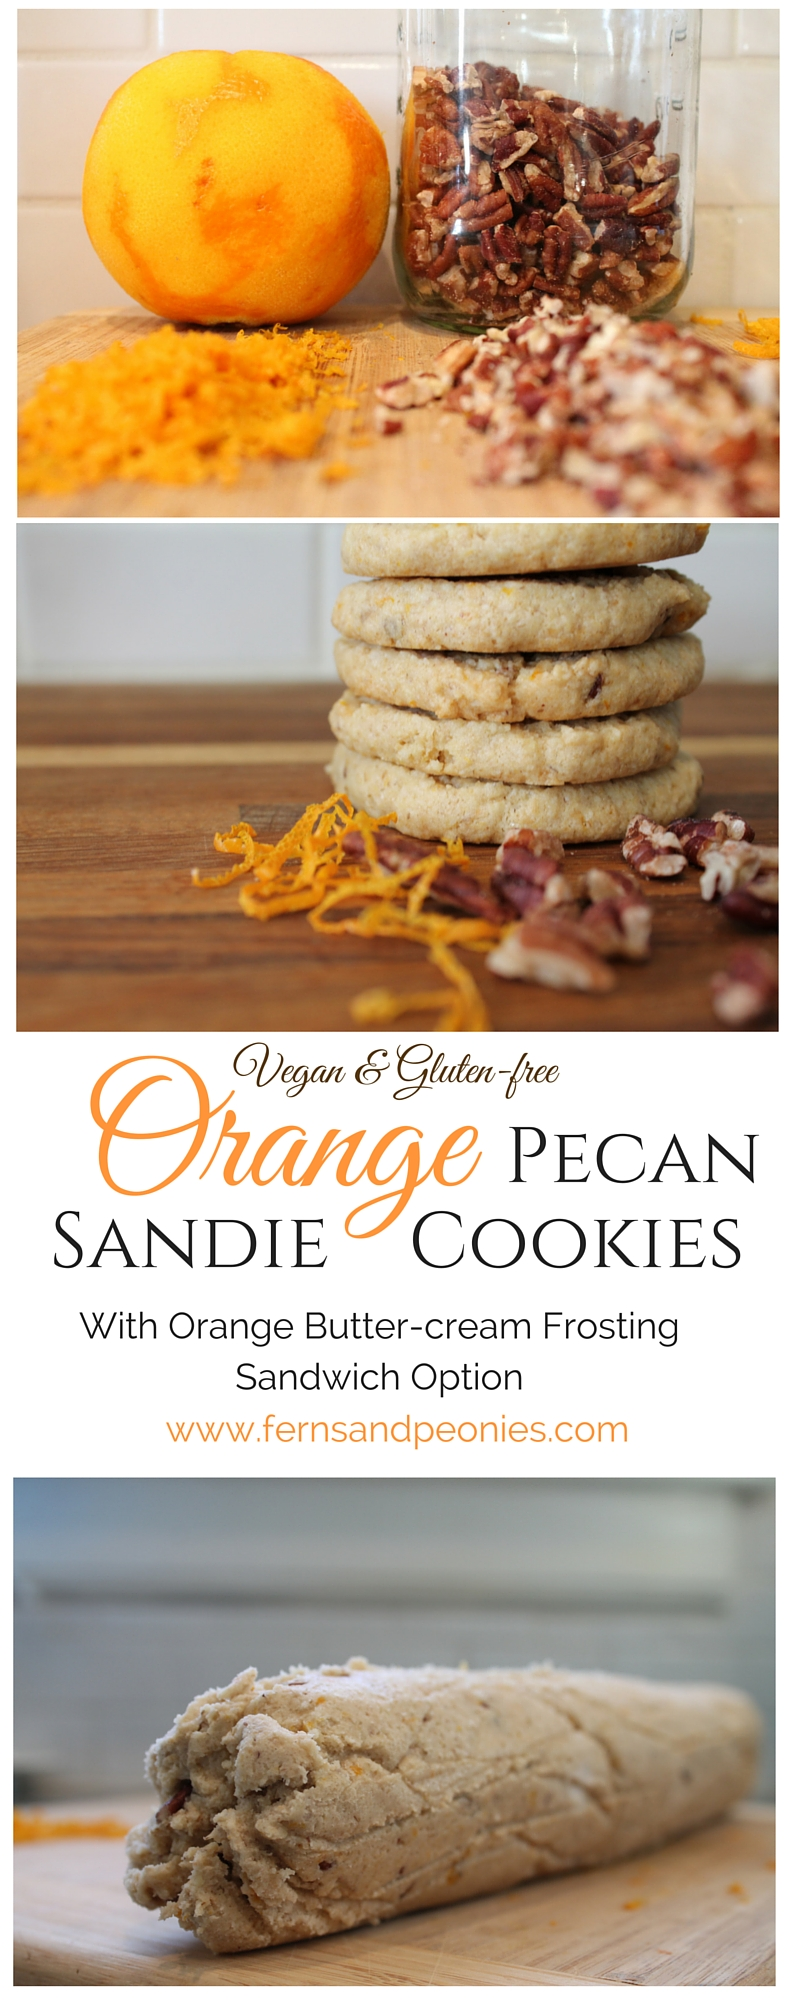 Vegan & Gluten-free Orange Pecan Sandies with Orange Butter-cream Frosting Cookie Sandwich Option. Free recipe on the blog at www.fernsandpeonies.com